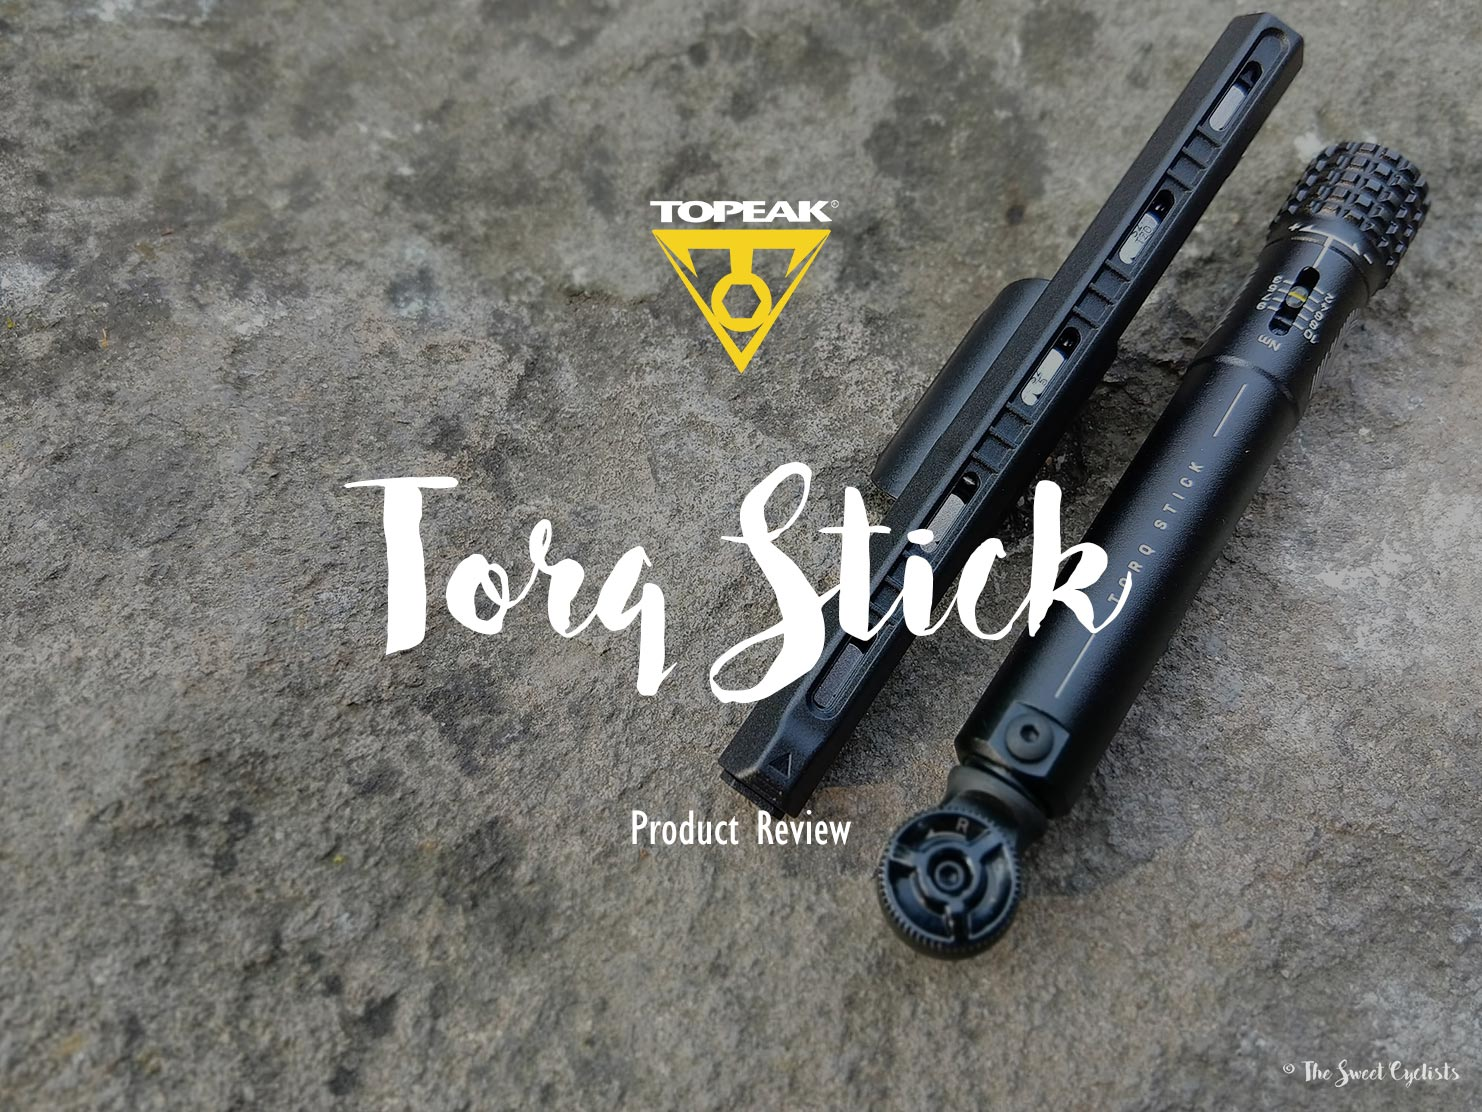 An incredibly compact torque wrench, the Topeak Torq Stick